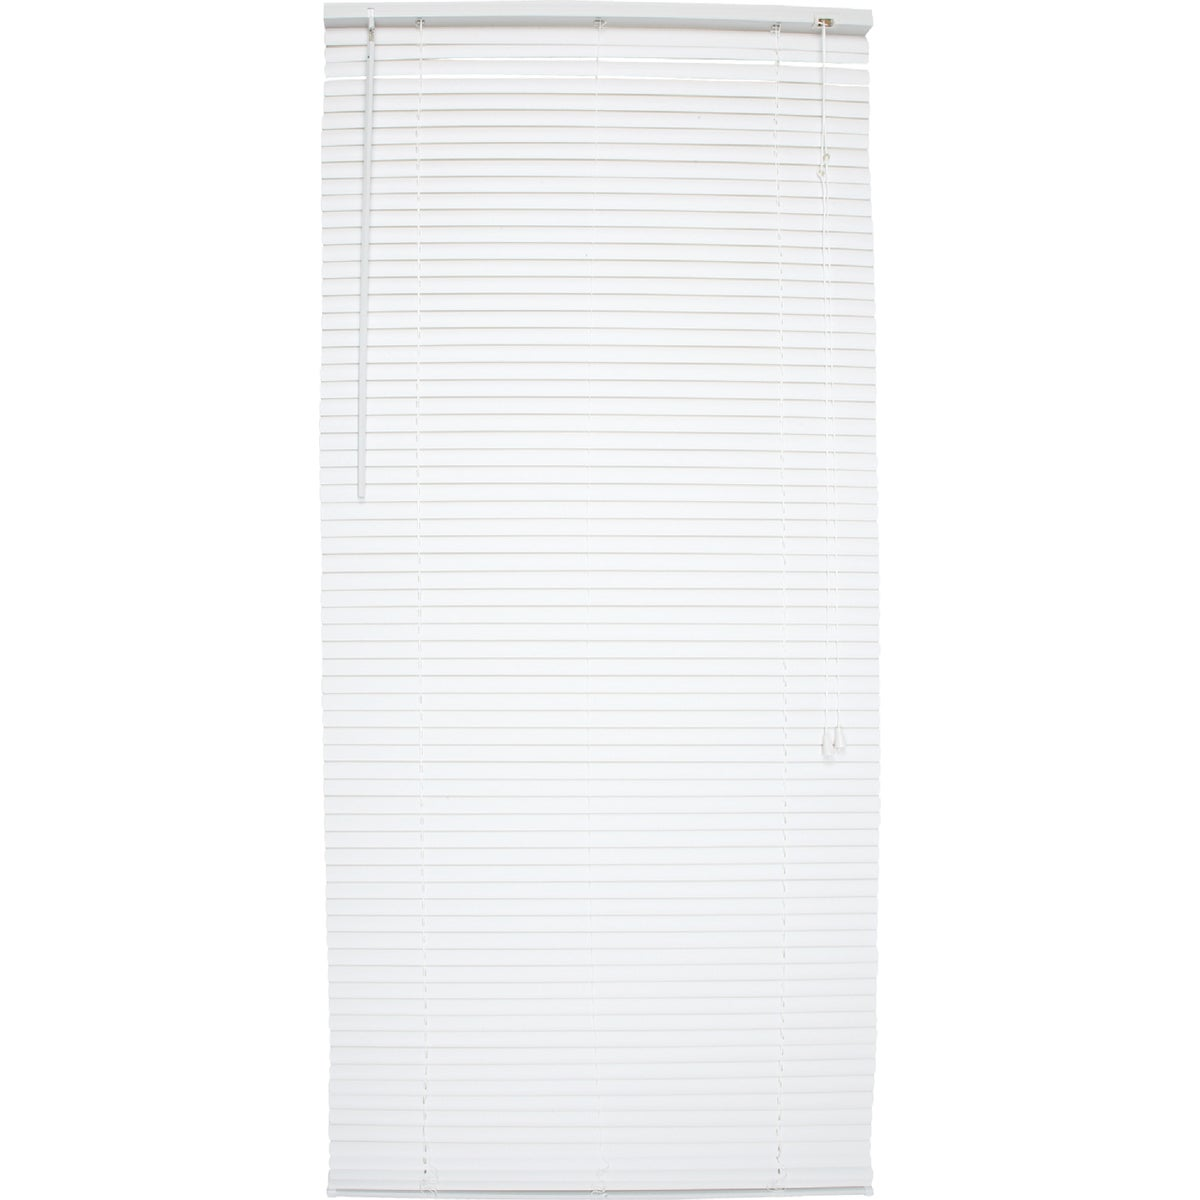 40X64 WHITE MINI BLIND - 615323 by Lotus Wind Incom